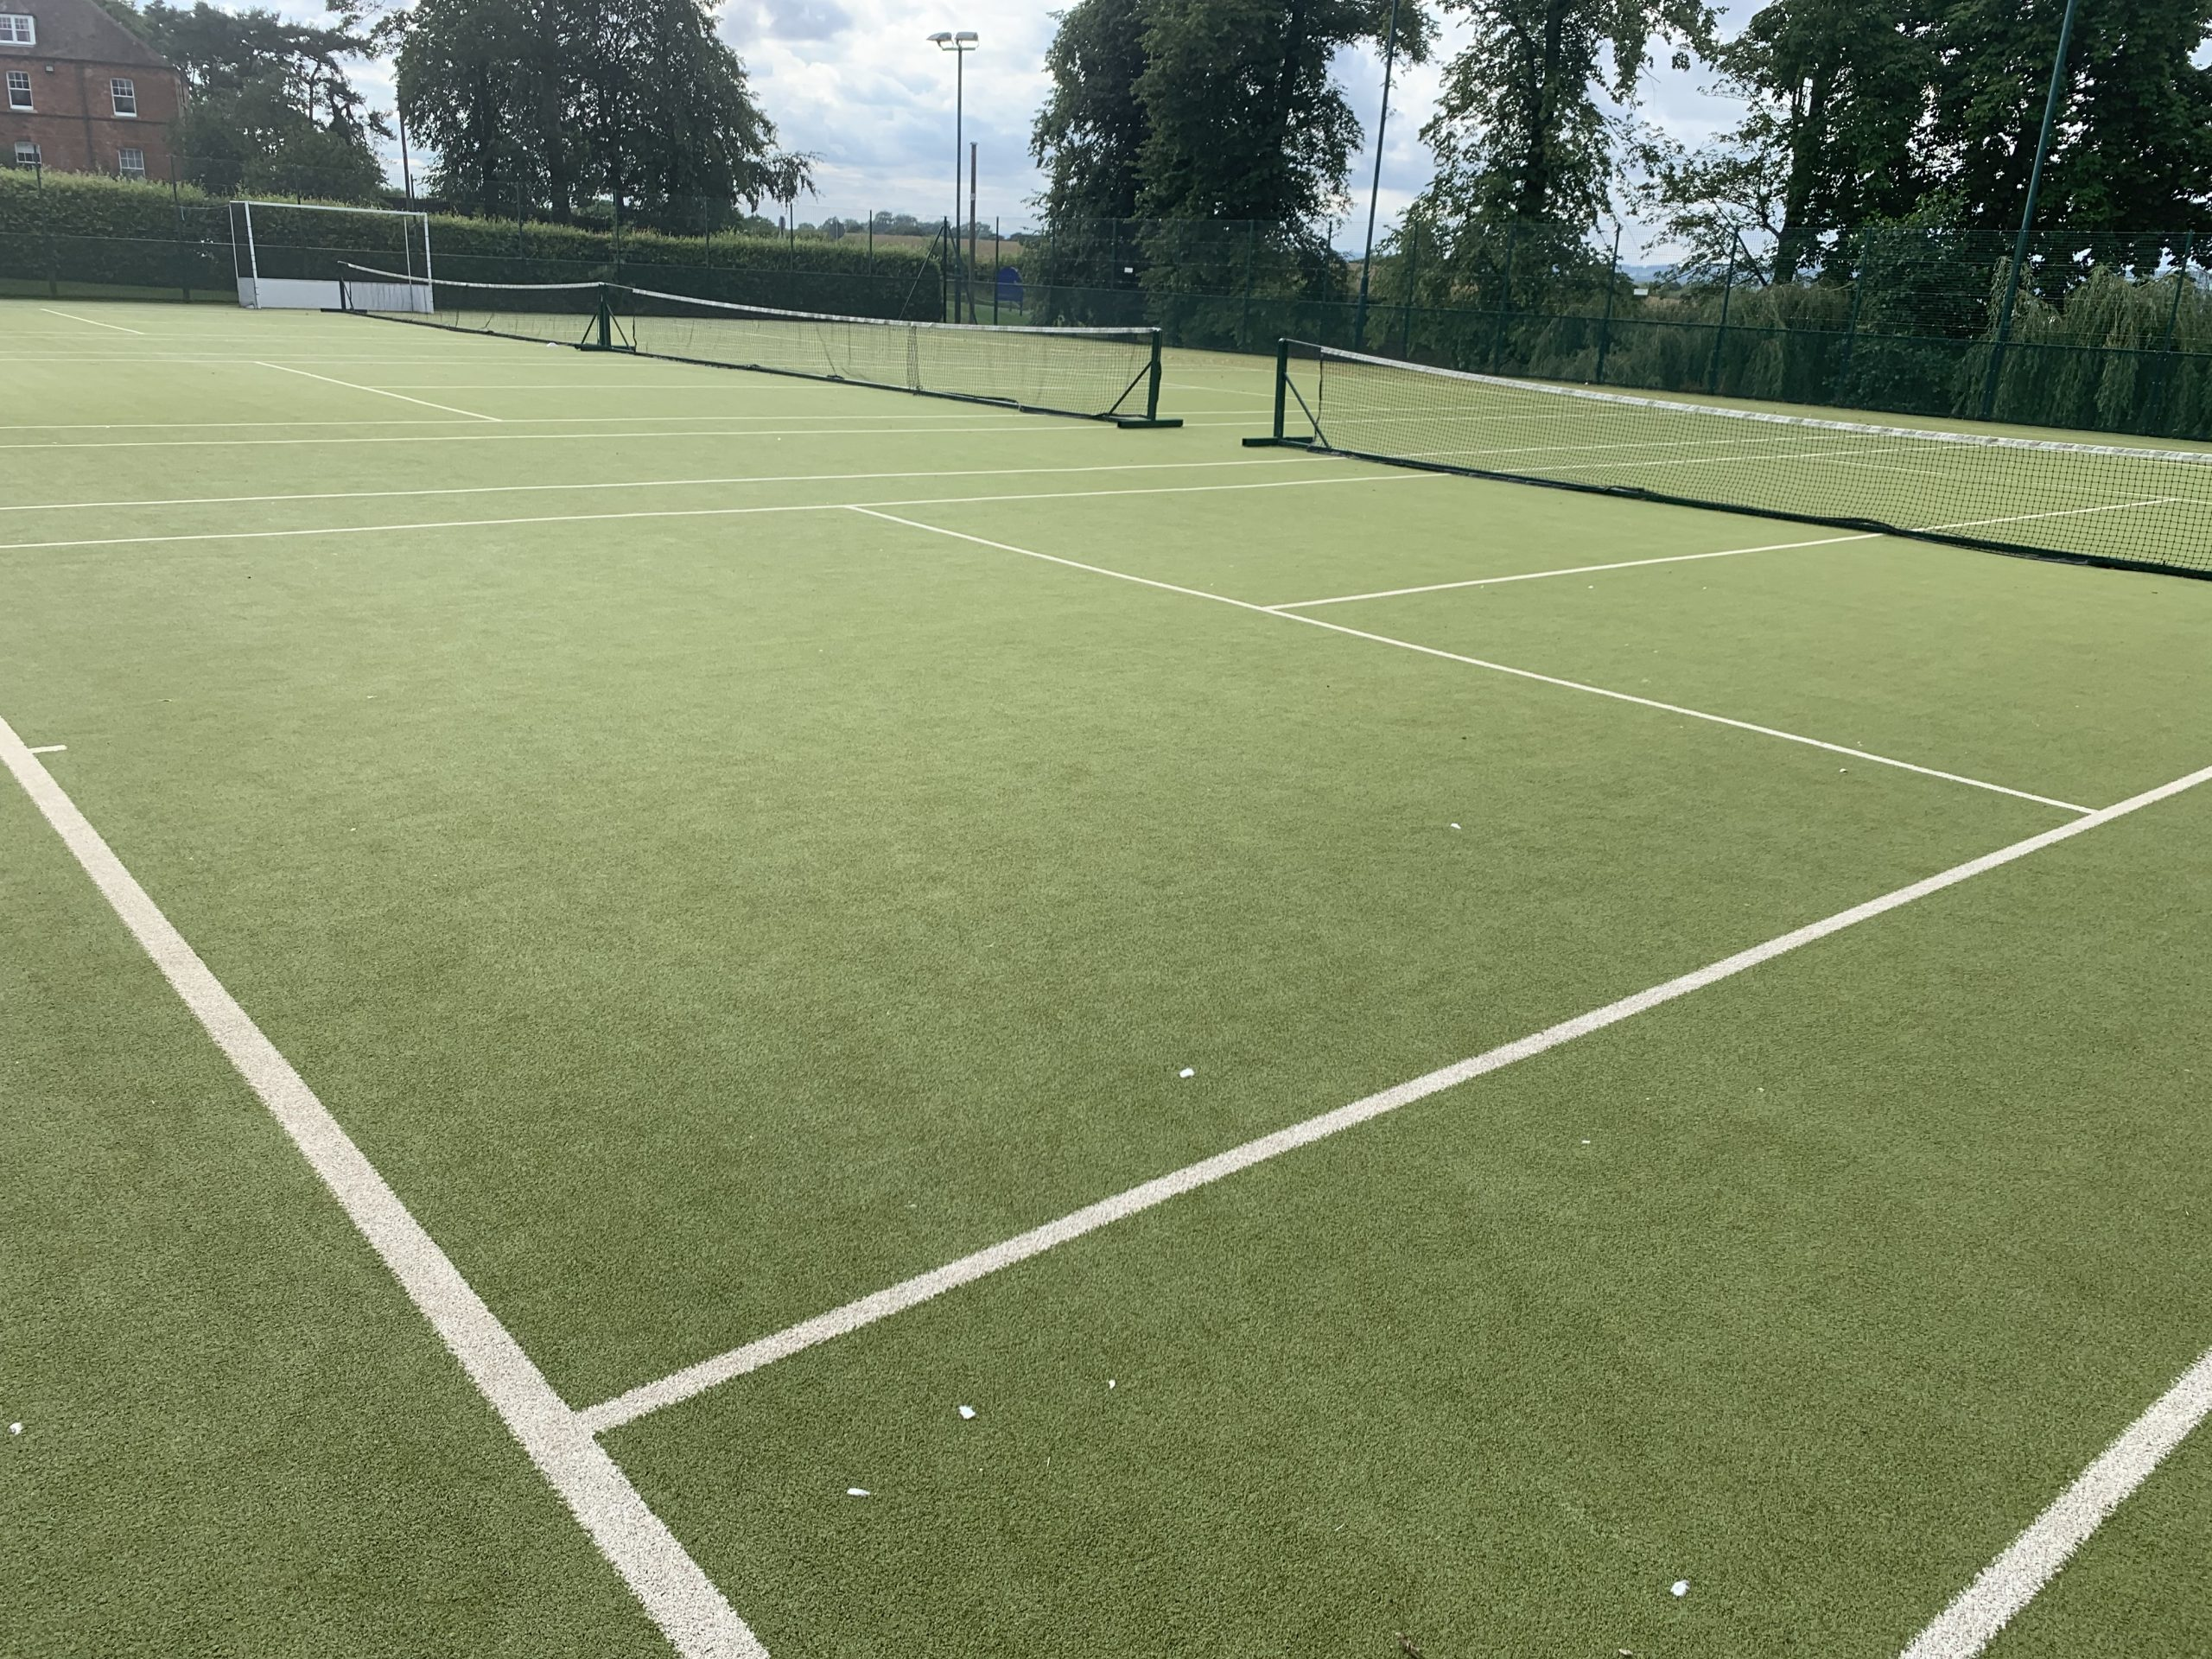 Aysgarth Tennis Courts